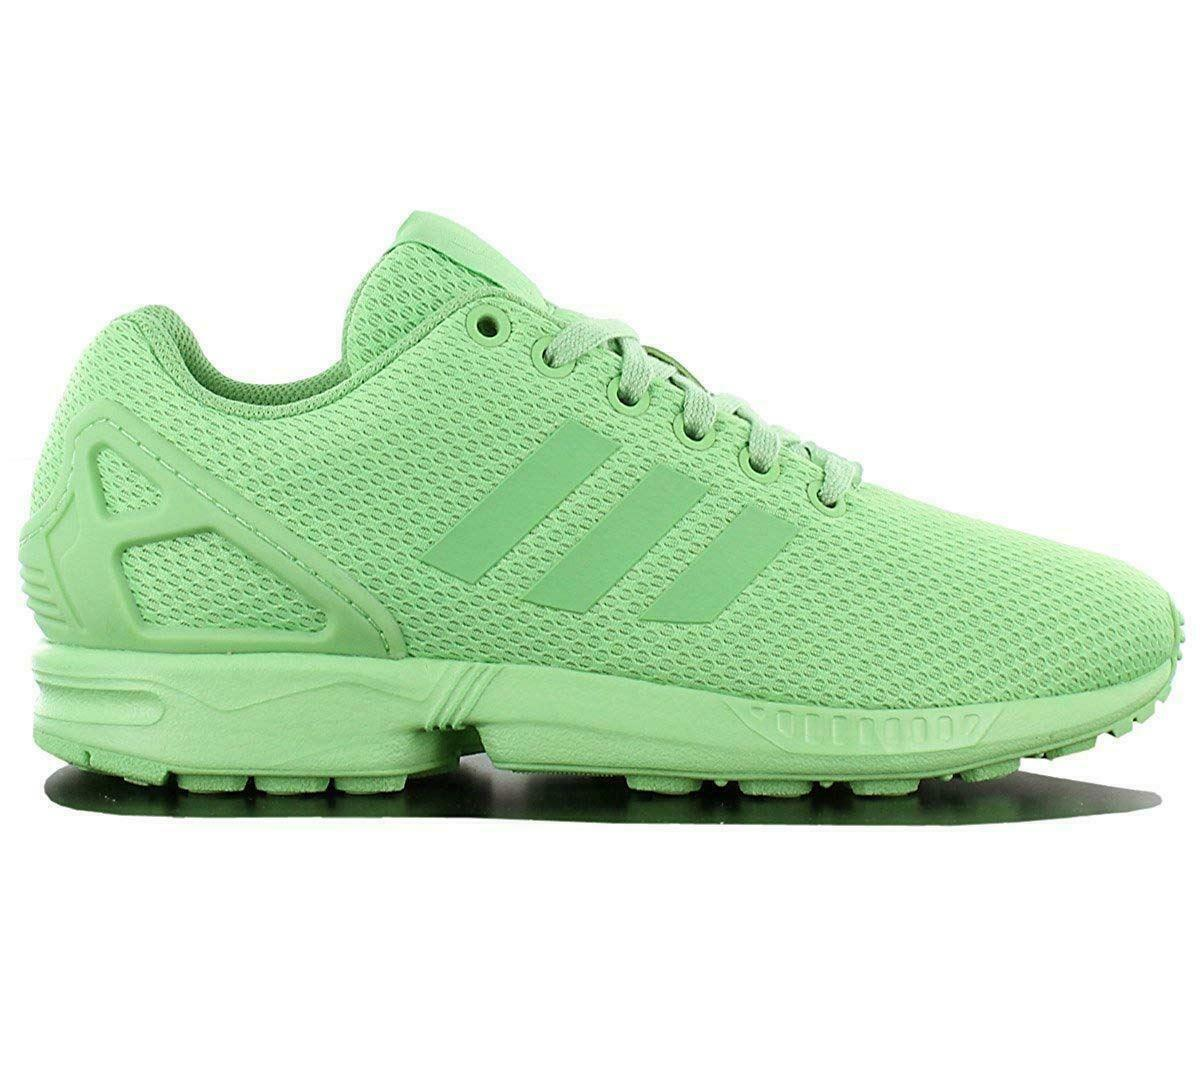 Womens ADIDAS ZX FLUX Green Casual Trainers S80313